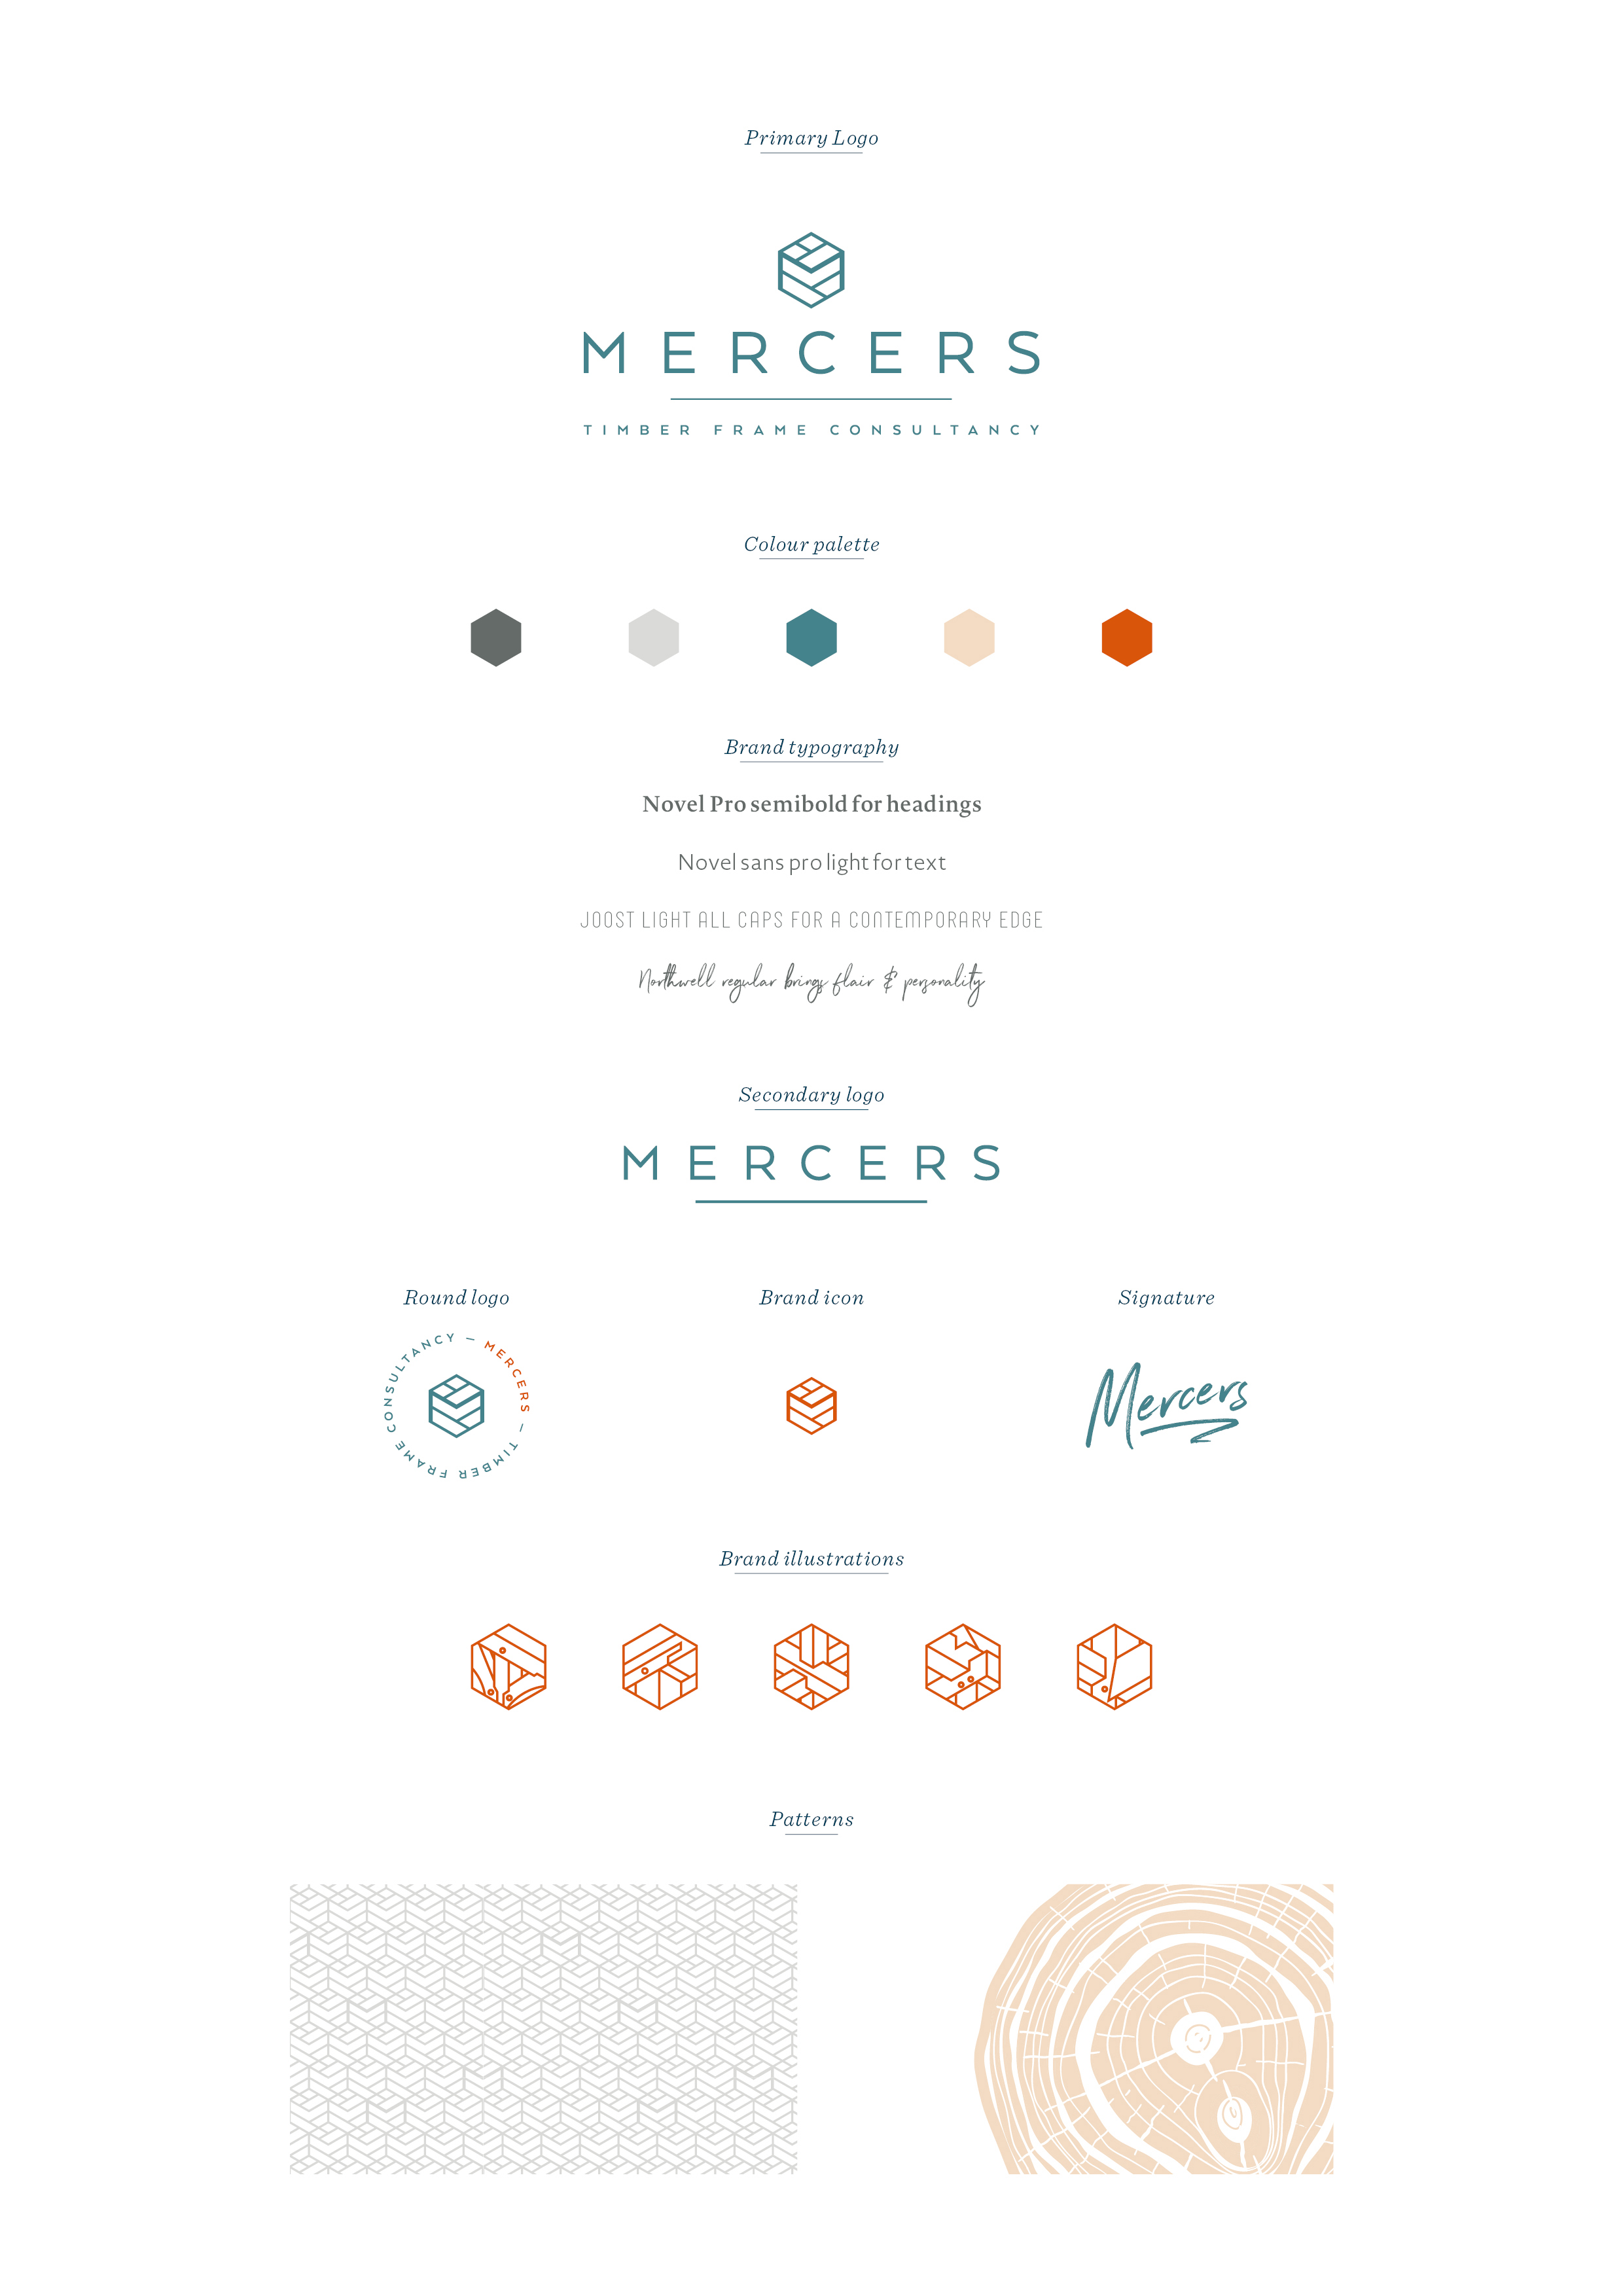 Mercers Timber Frame Consultancy, branding by Ditto Creative, boutique branding agency in Kent